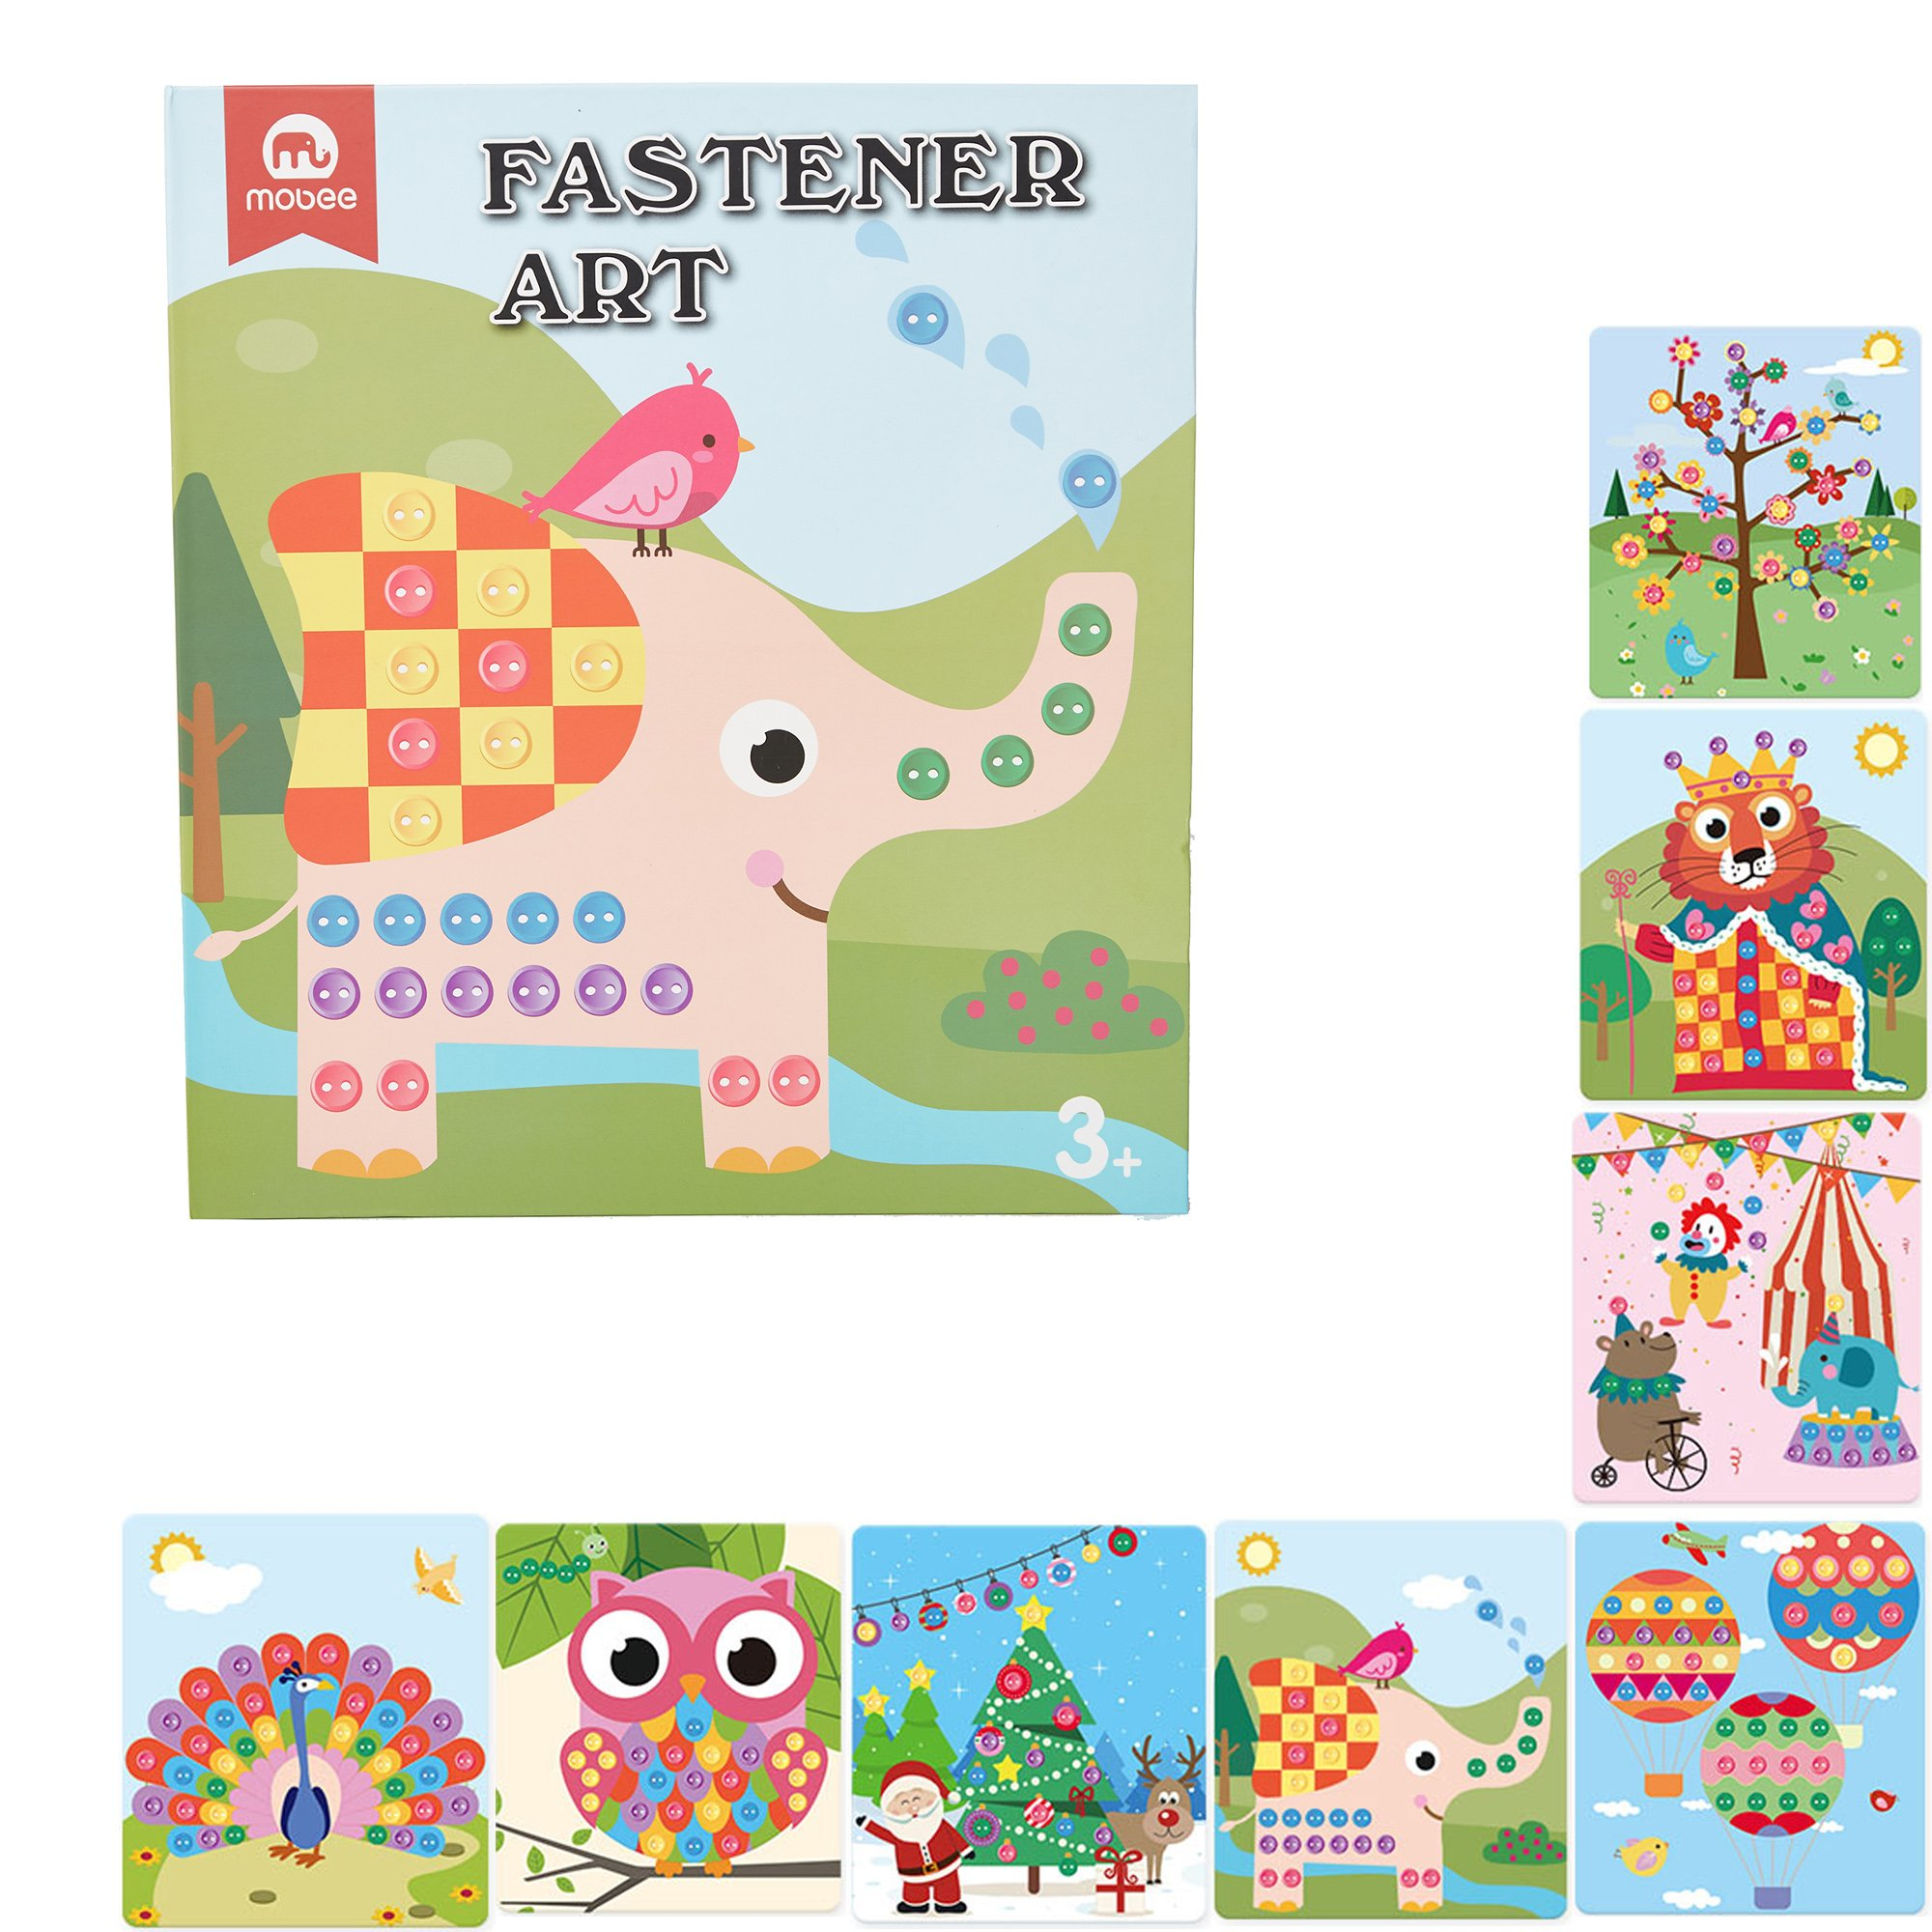 Mobee Button Sticker Mosaic Color Matching Fastener Art with 8 Dot Markers and 6 Fasteners Kids DIY Creative Crafts Kits Learning Educational Toys for Toddlers